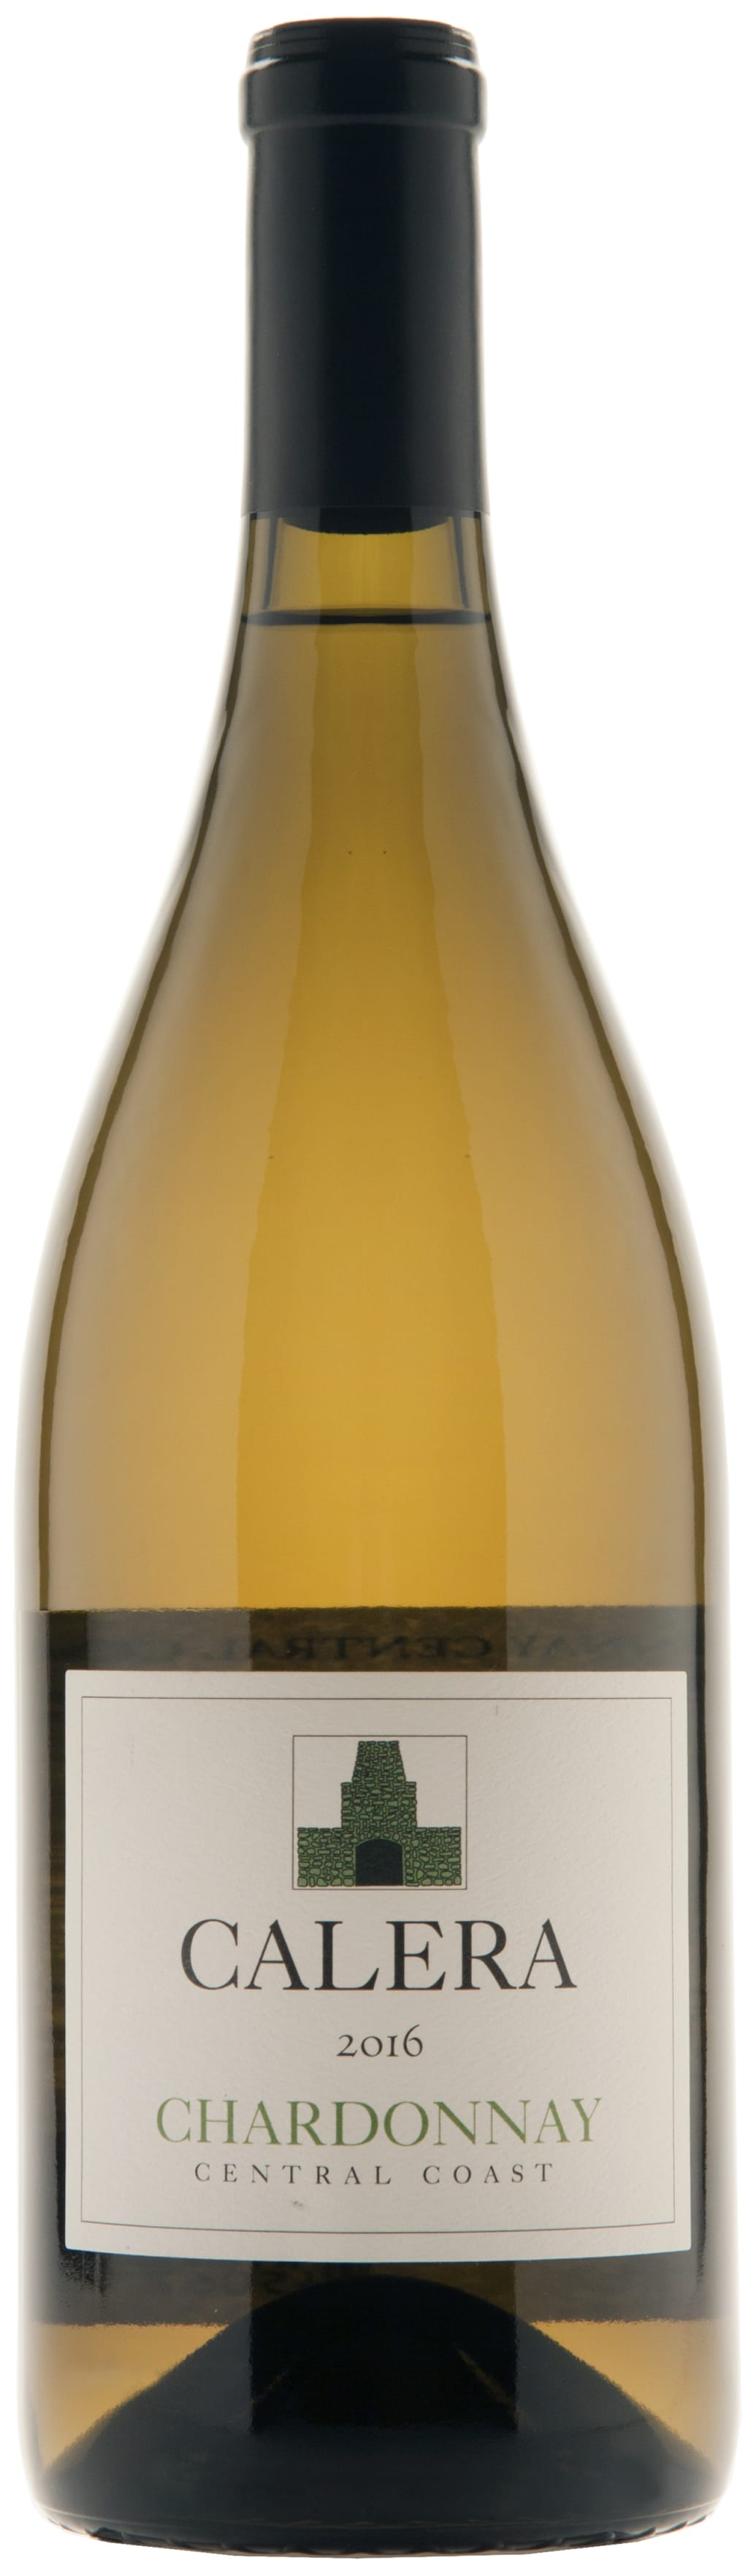 Calera Chardonnay Central Coast · United States 2016 or Current Vintage